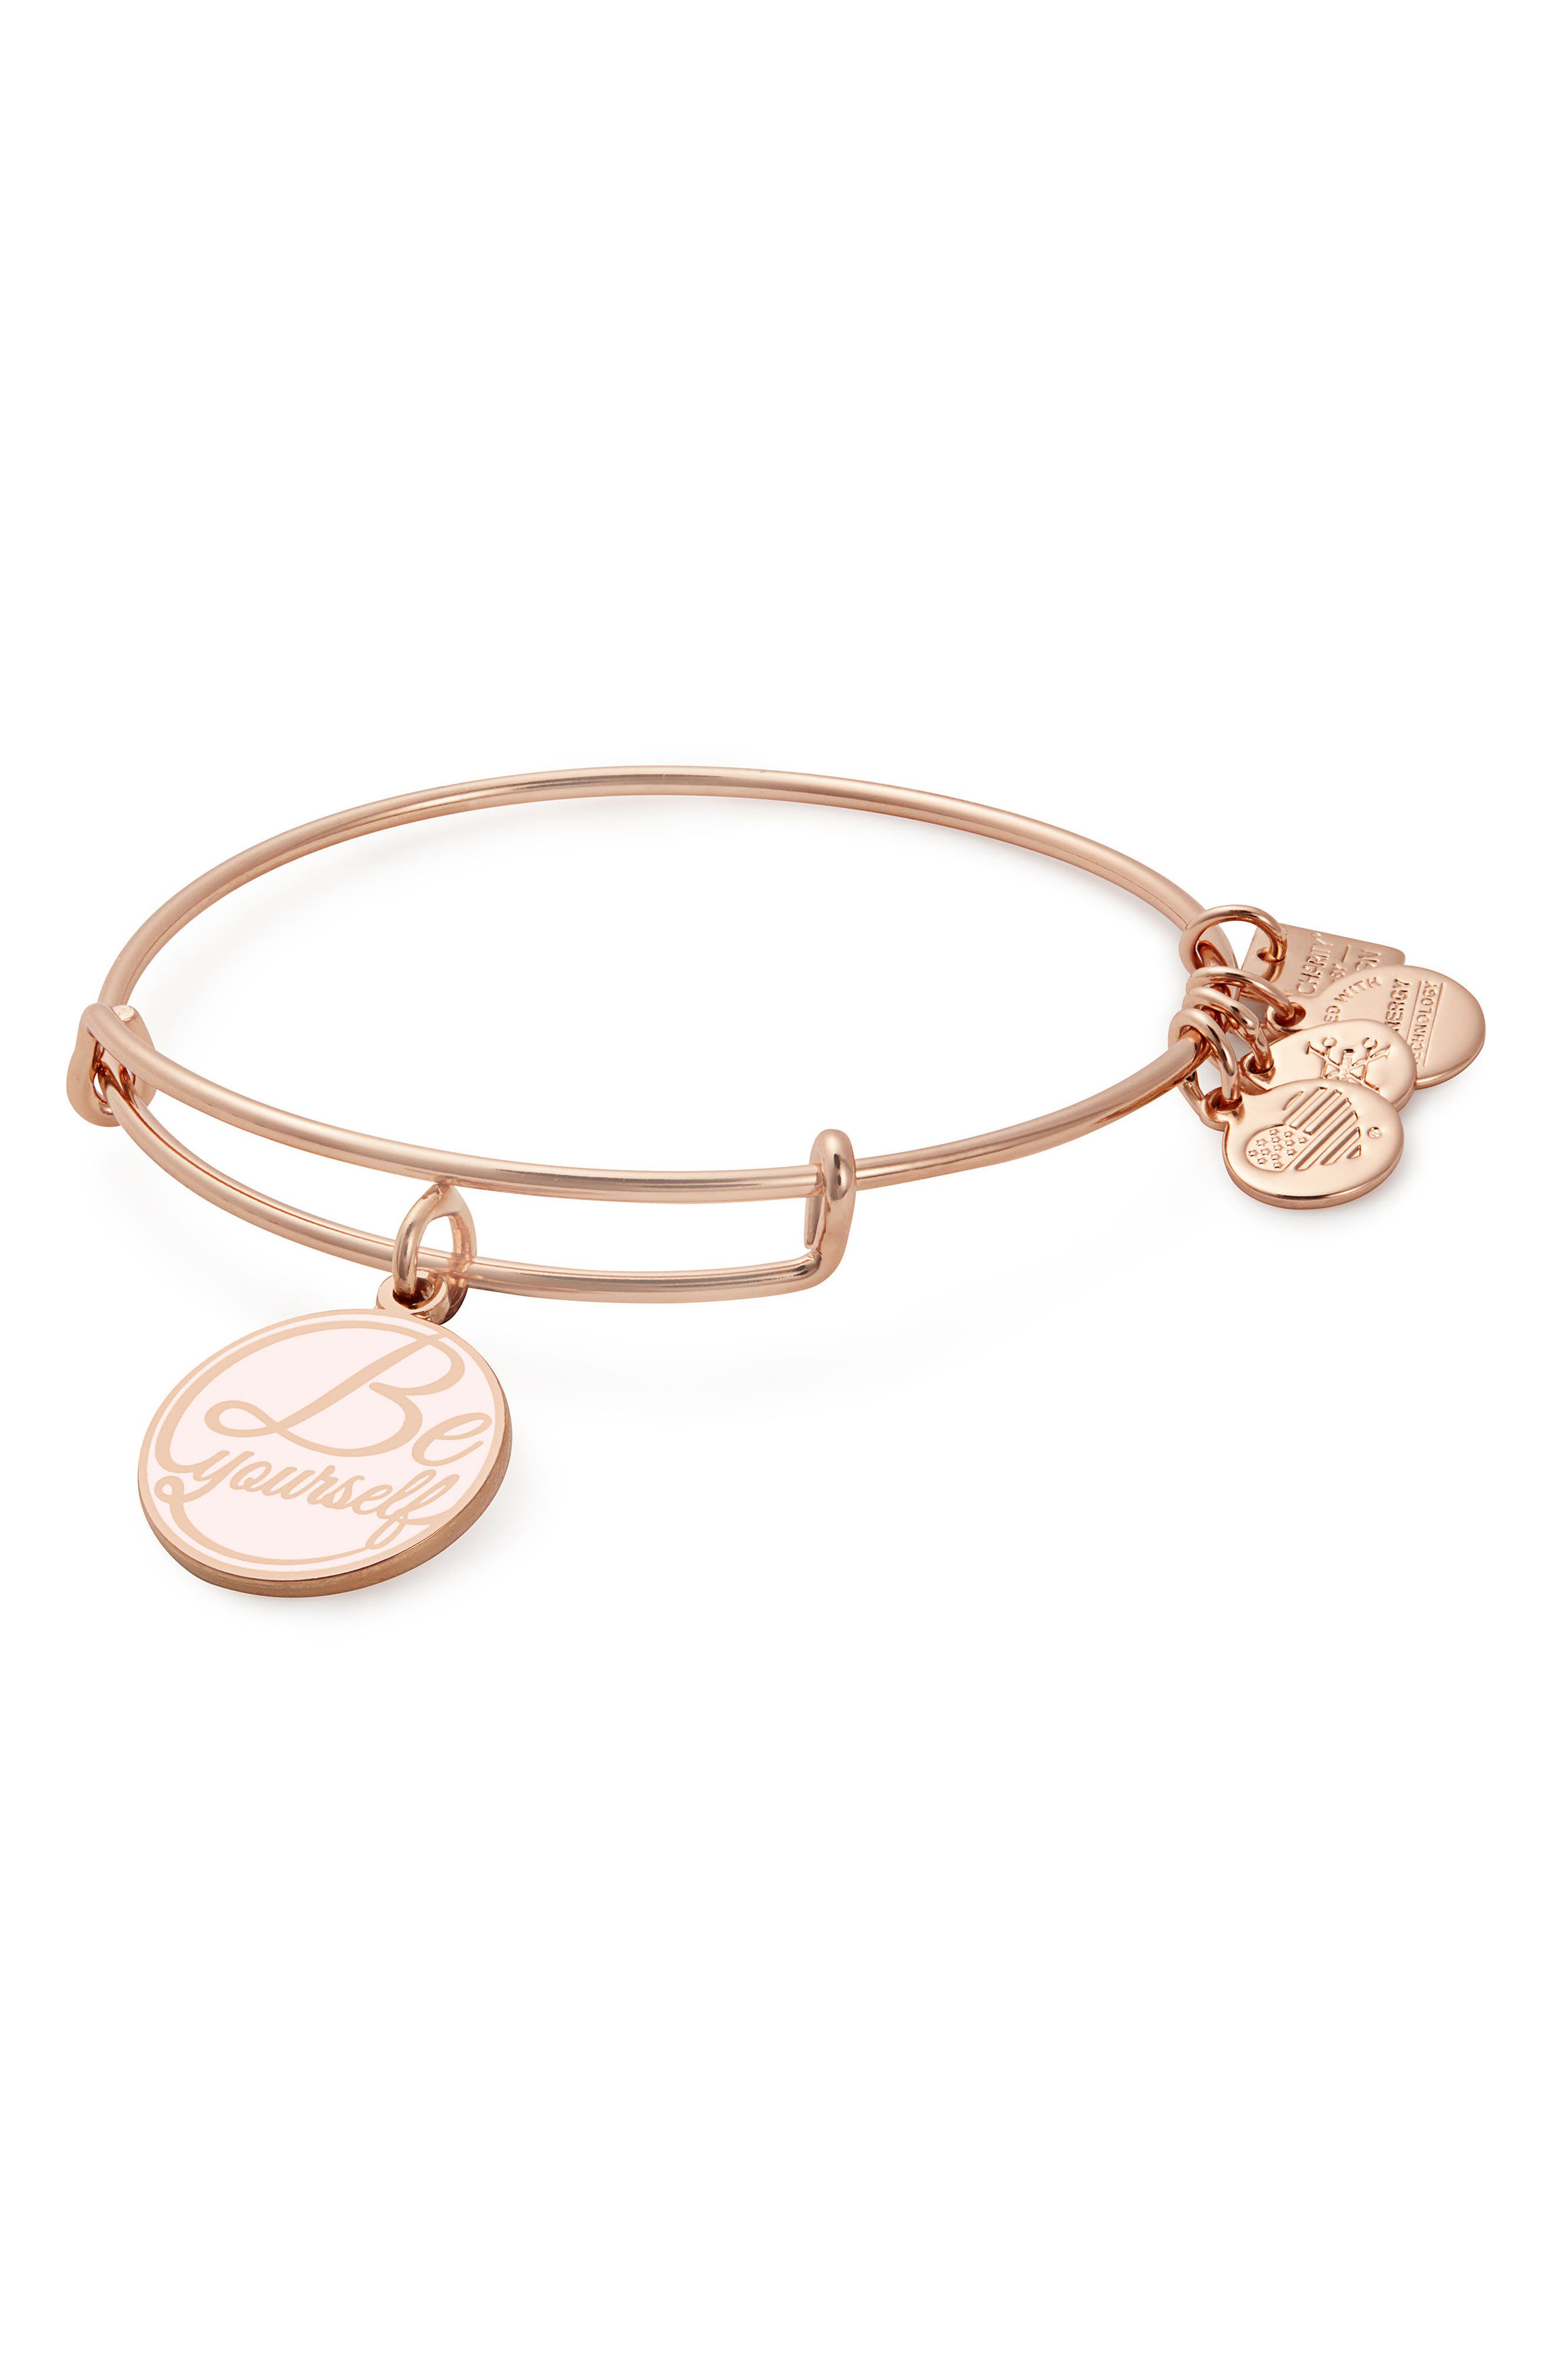 Alex and Ani Kindred Cord Be Yourself Bangle